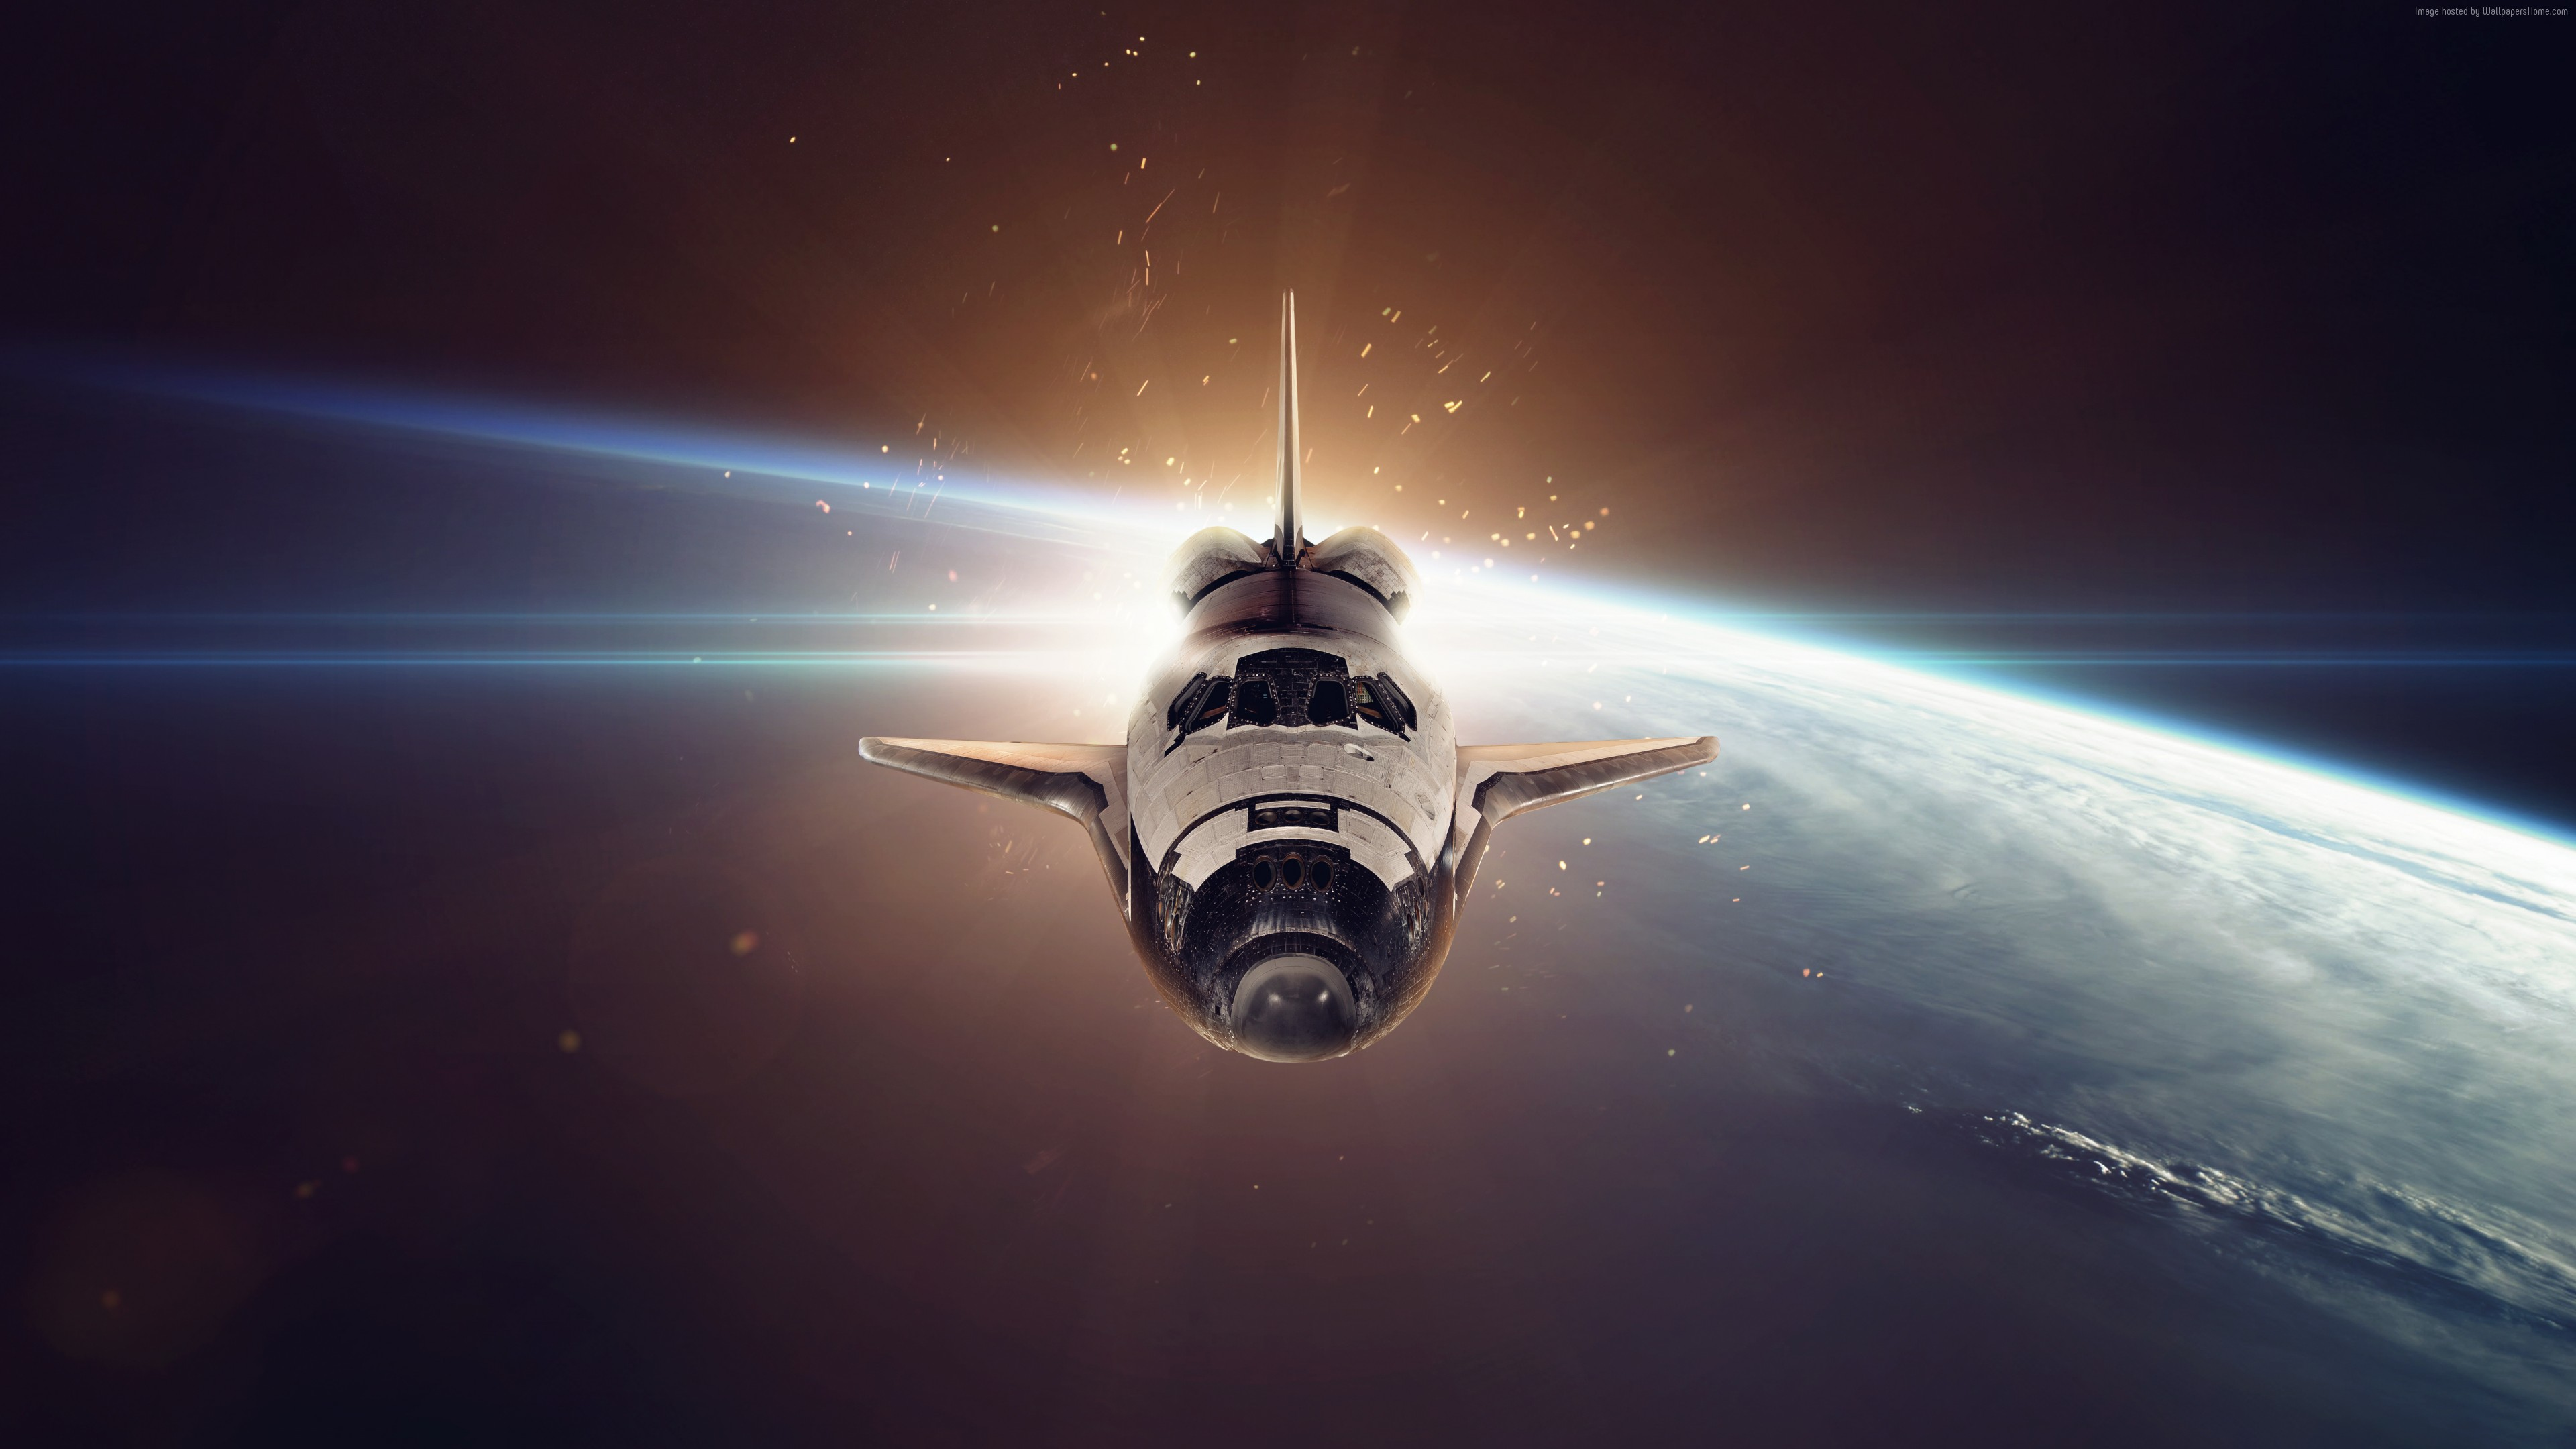 Wallpaper Spaceship Space Galaxy 5k Space Wallpaper Download High Resolution 4k Wallpaper